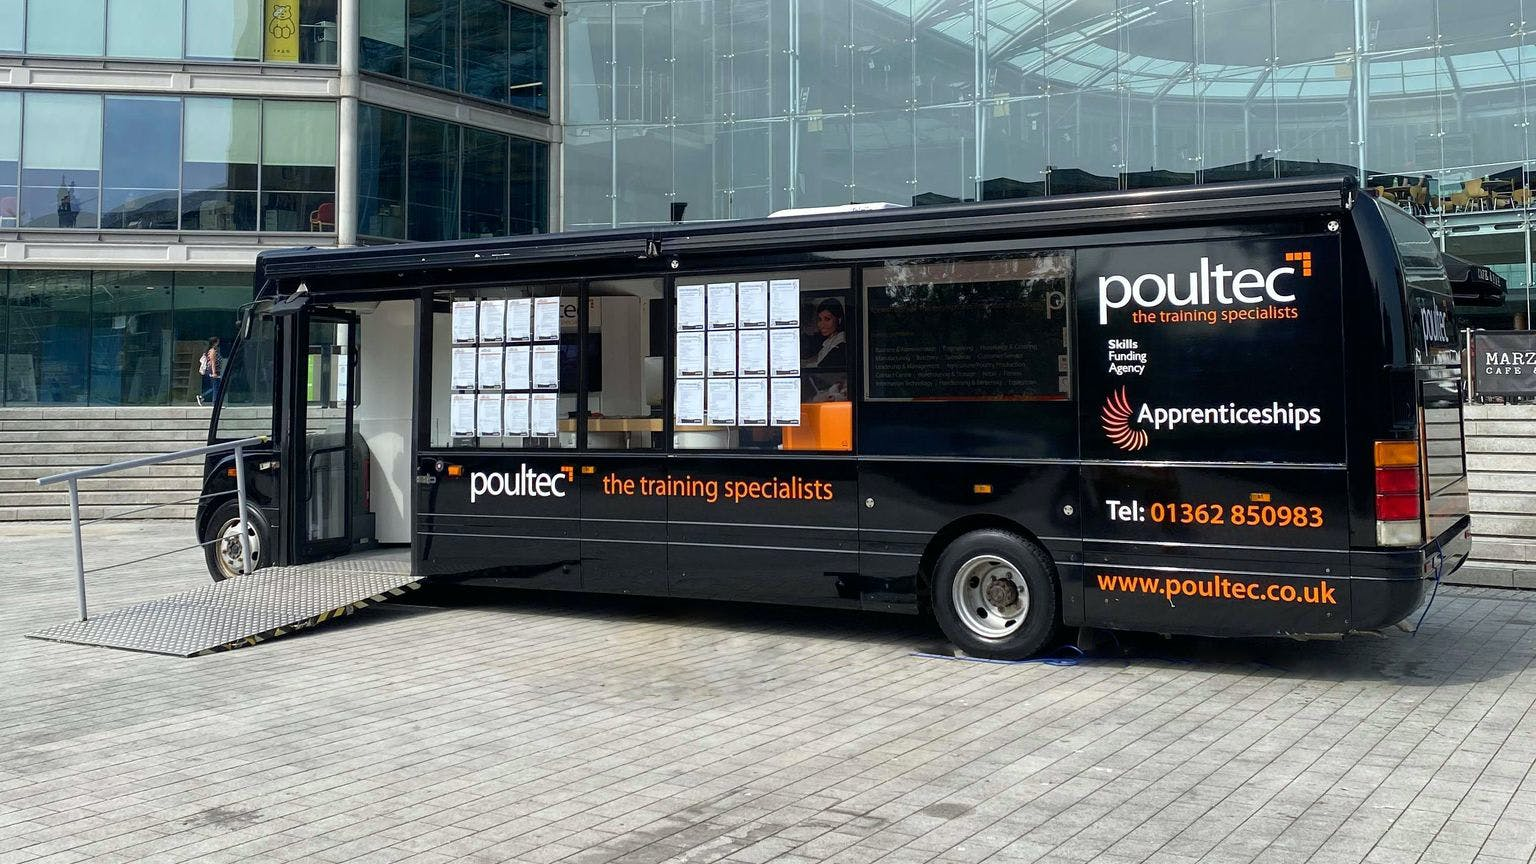 A picture of the Poultec Training bus outside The Forum, Norwich